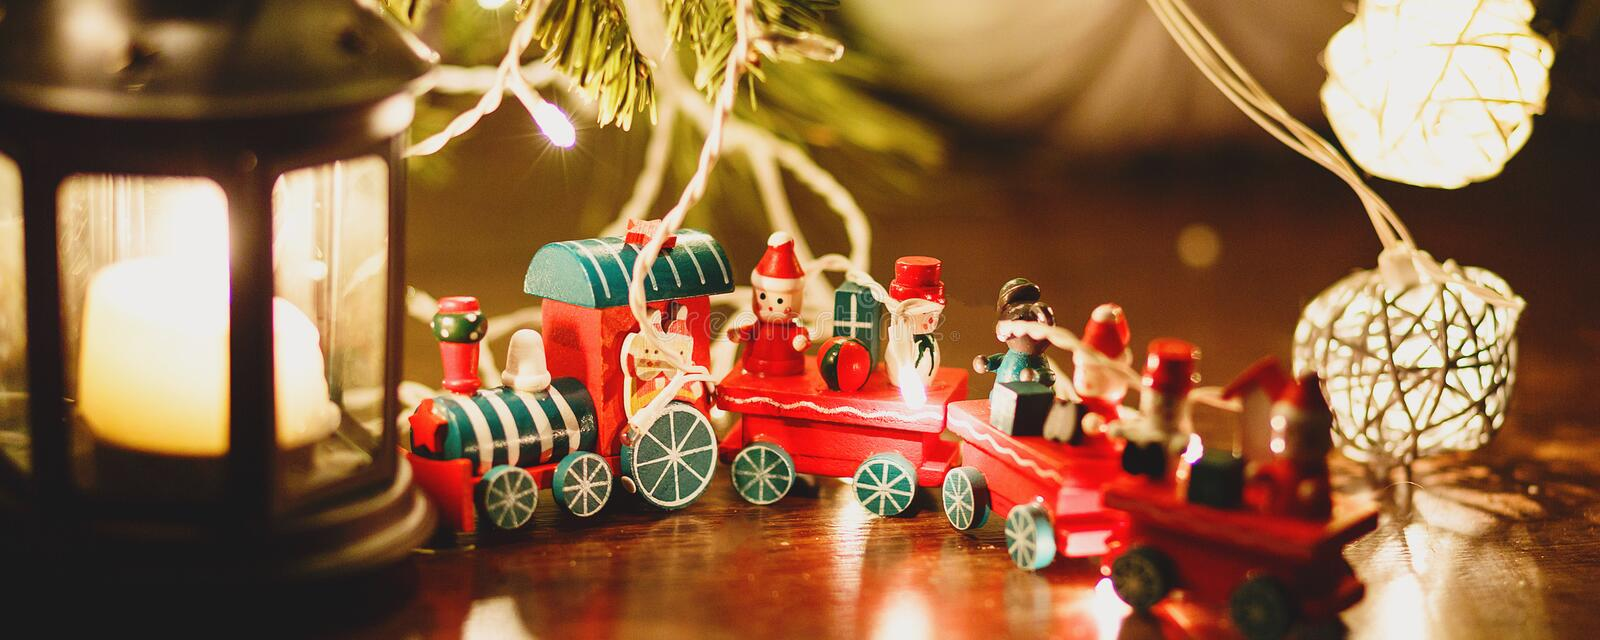 Red and green train stands under fir tree in lights next to black candlestick on the floor. Christmas and New year celebration stock image